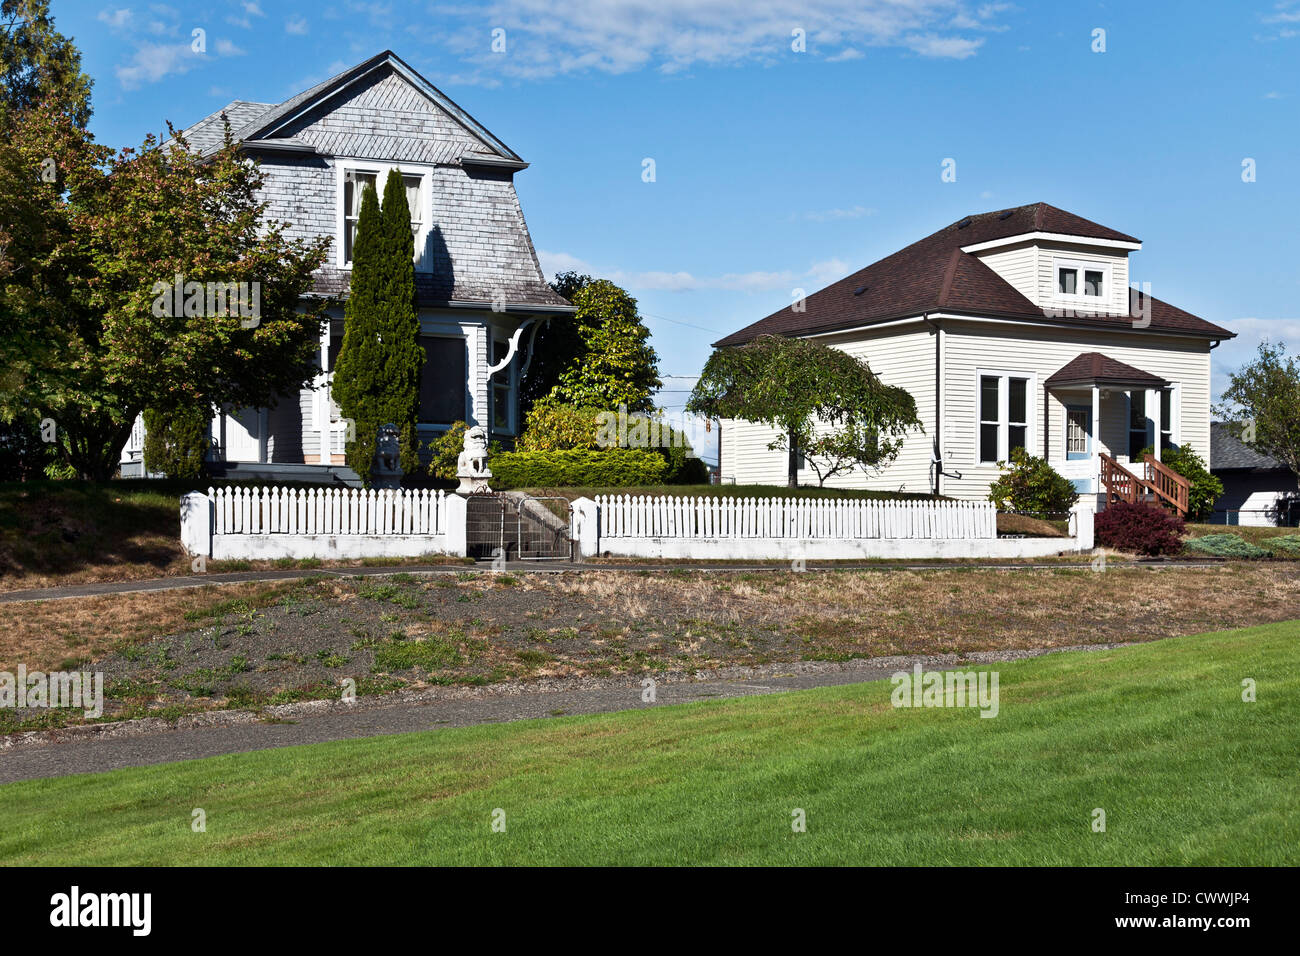 simple old painted wood frame houses, one with shingle mansard roof & white wooden picket fence in town of South - Stock Image